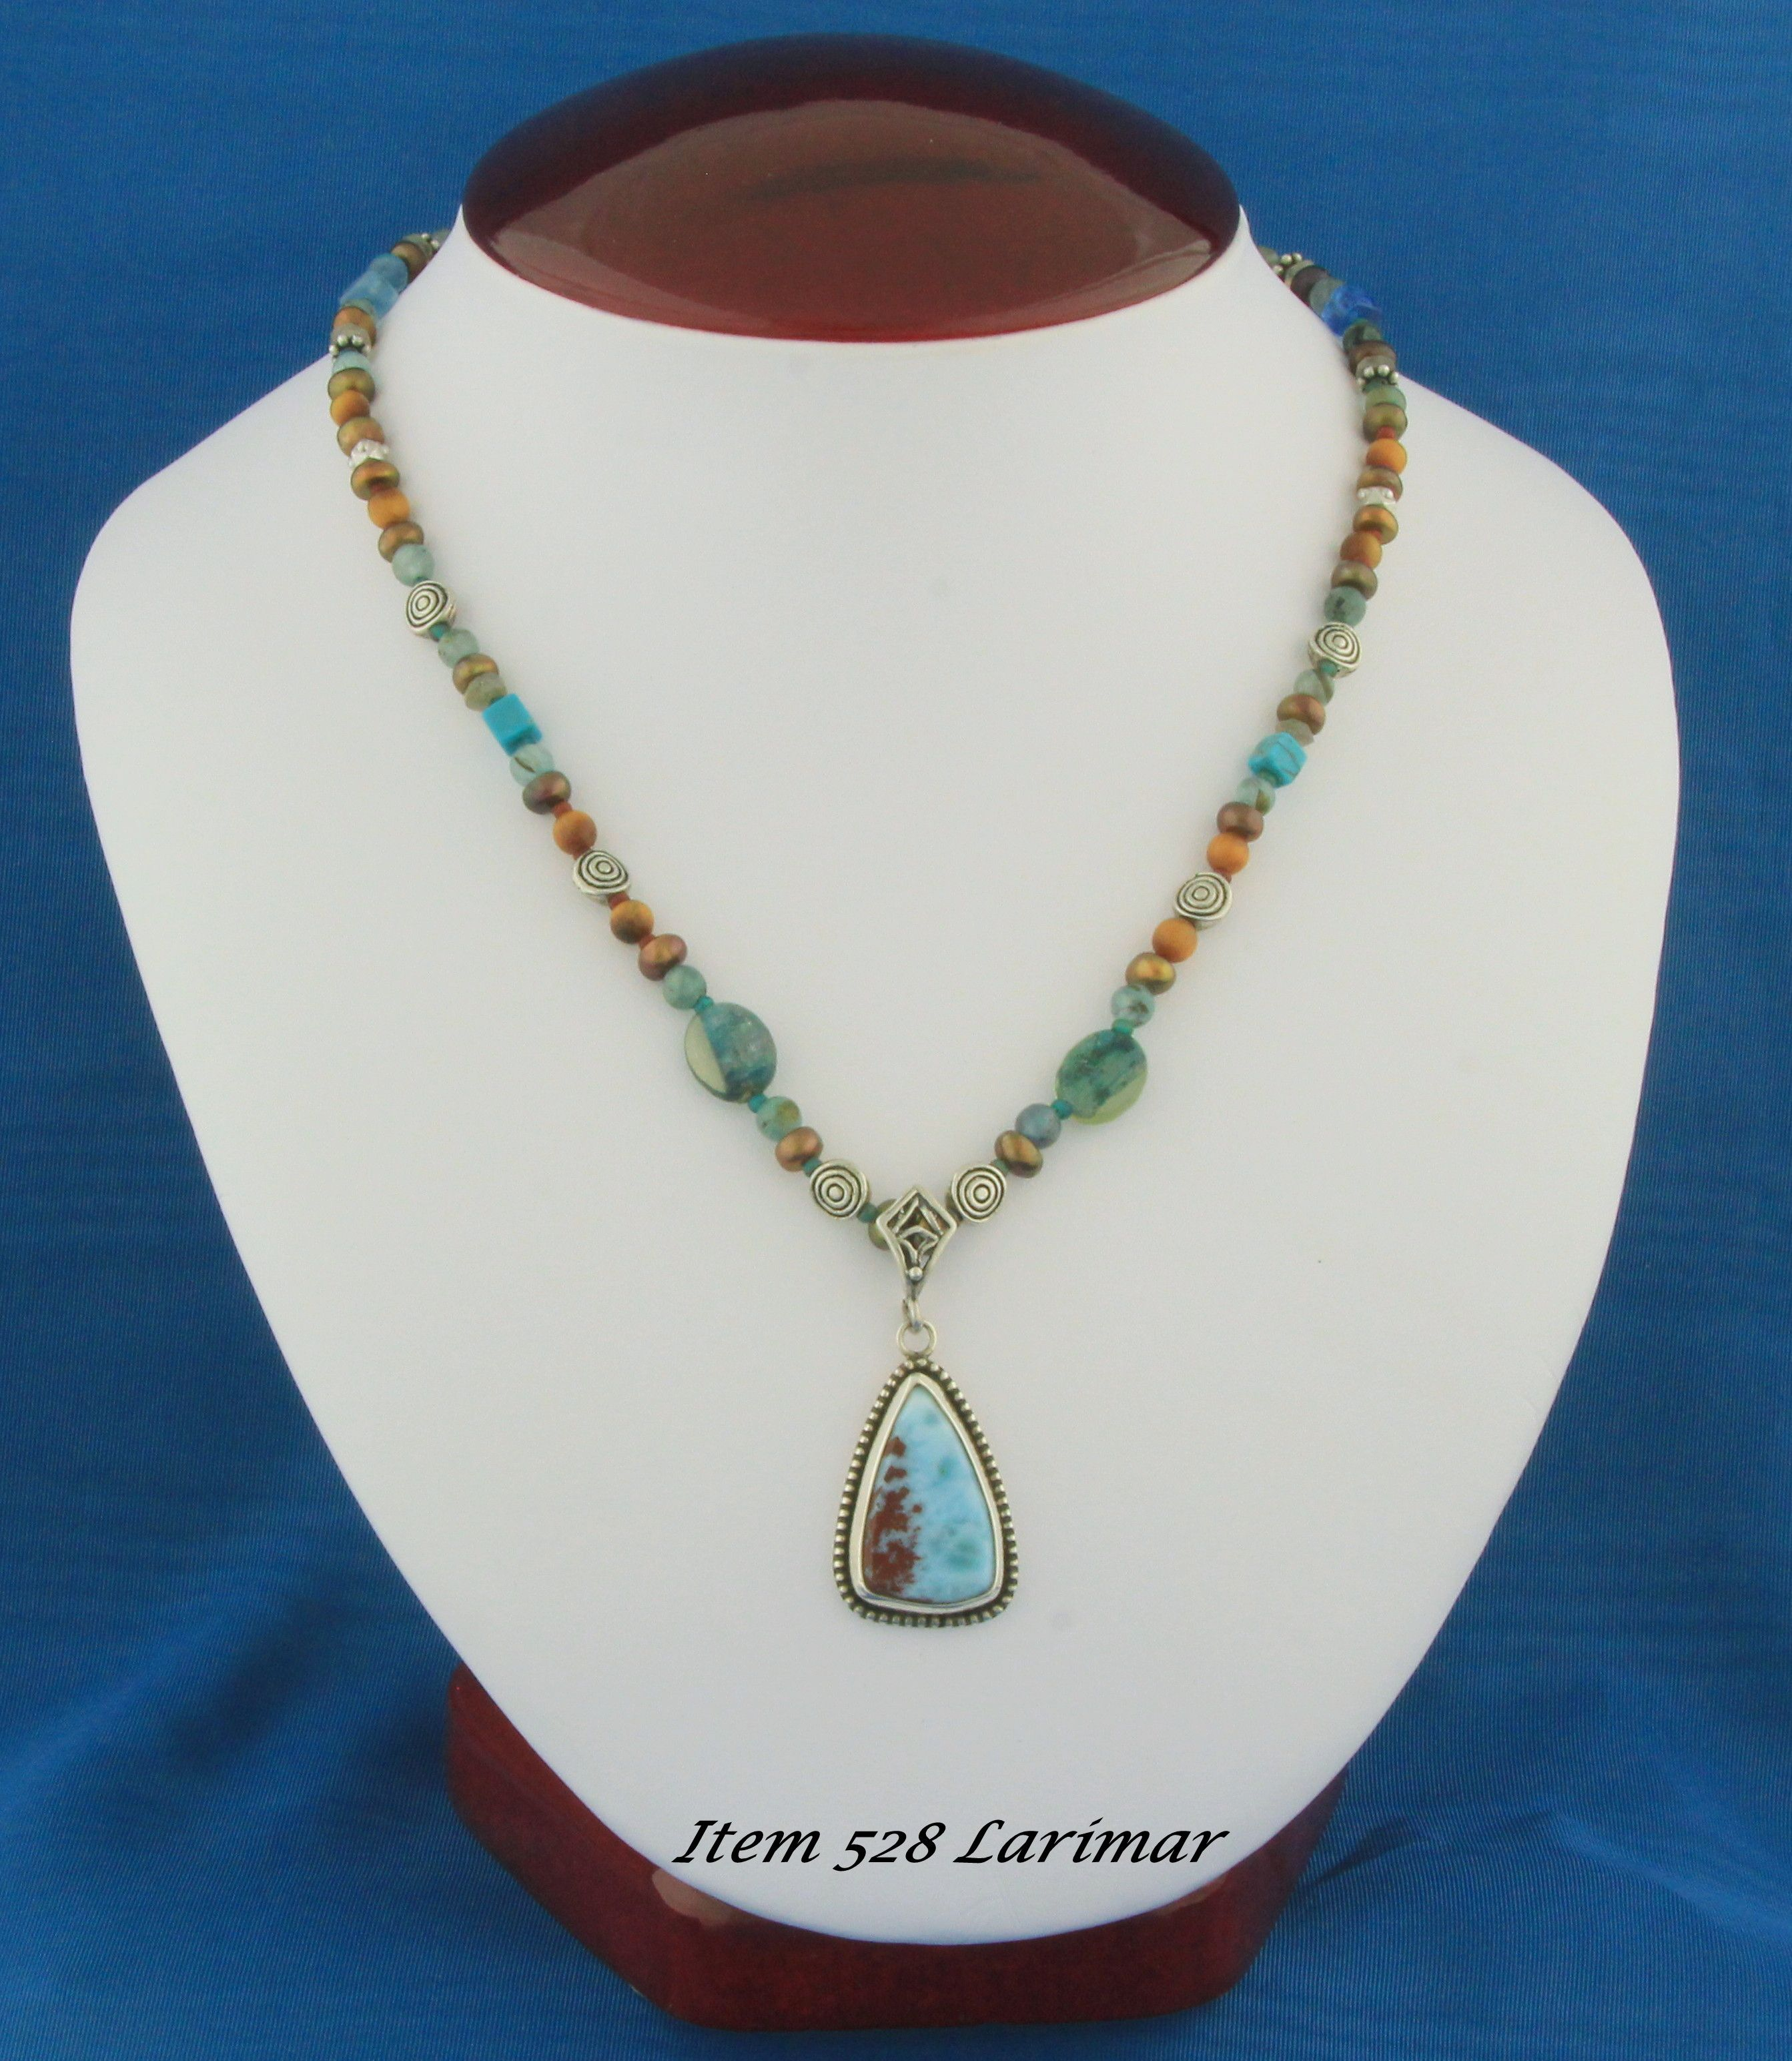 Larimar Pendent w/Designer Necklace by Heather Keasbey This Item was SOLD